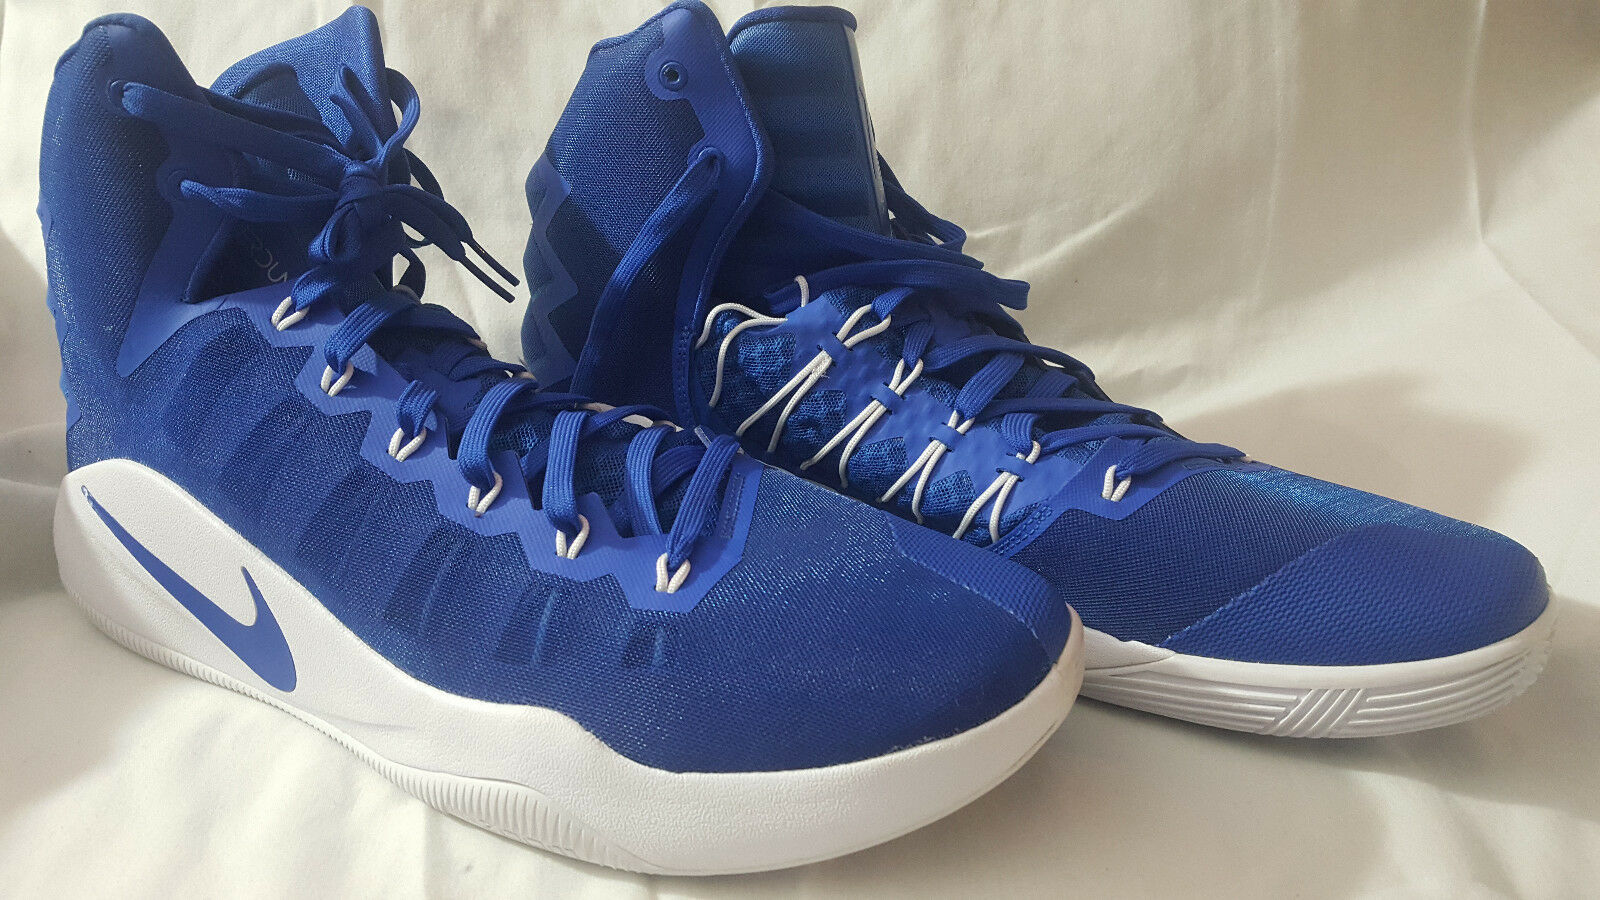 NEW Nike Hyperdunk High Top Basketball shoes Size 17 (Royal bluee) 856483-441